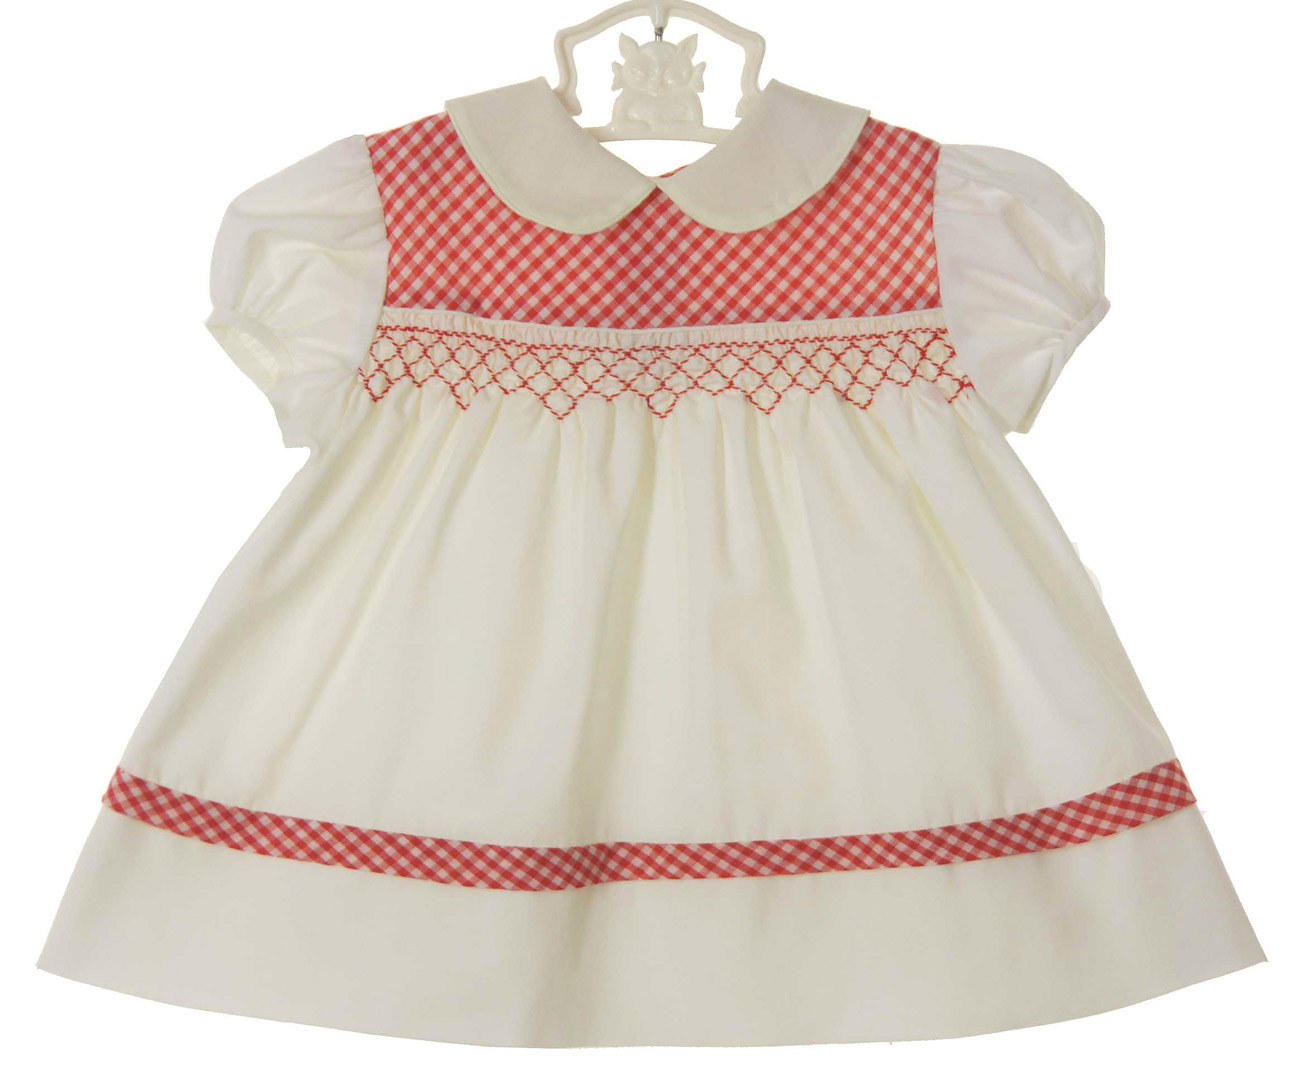 Vintage 1960s Polly Flinders Red And Off White Baby Dress